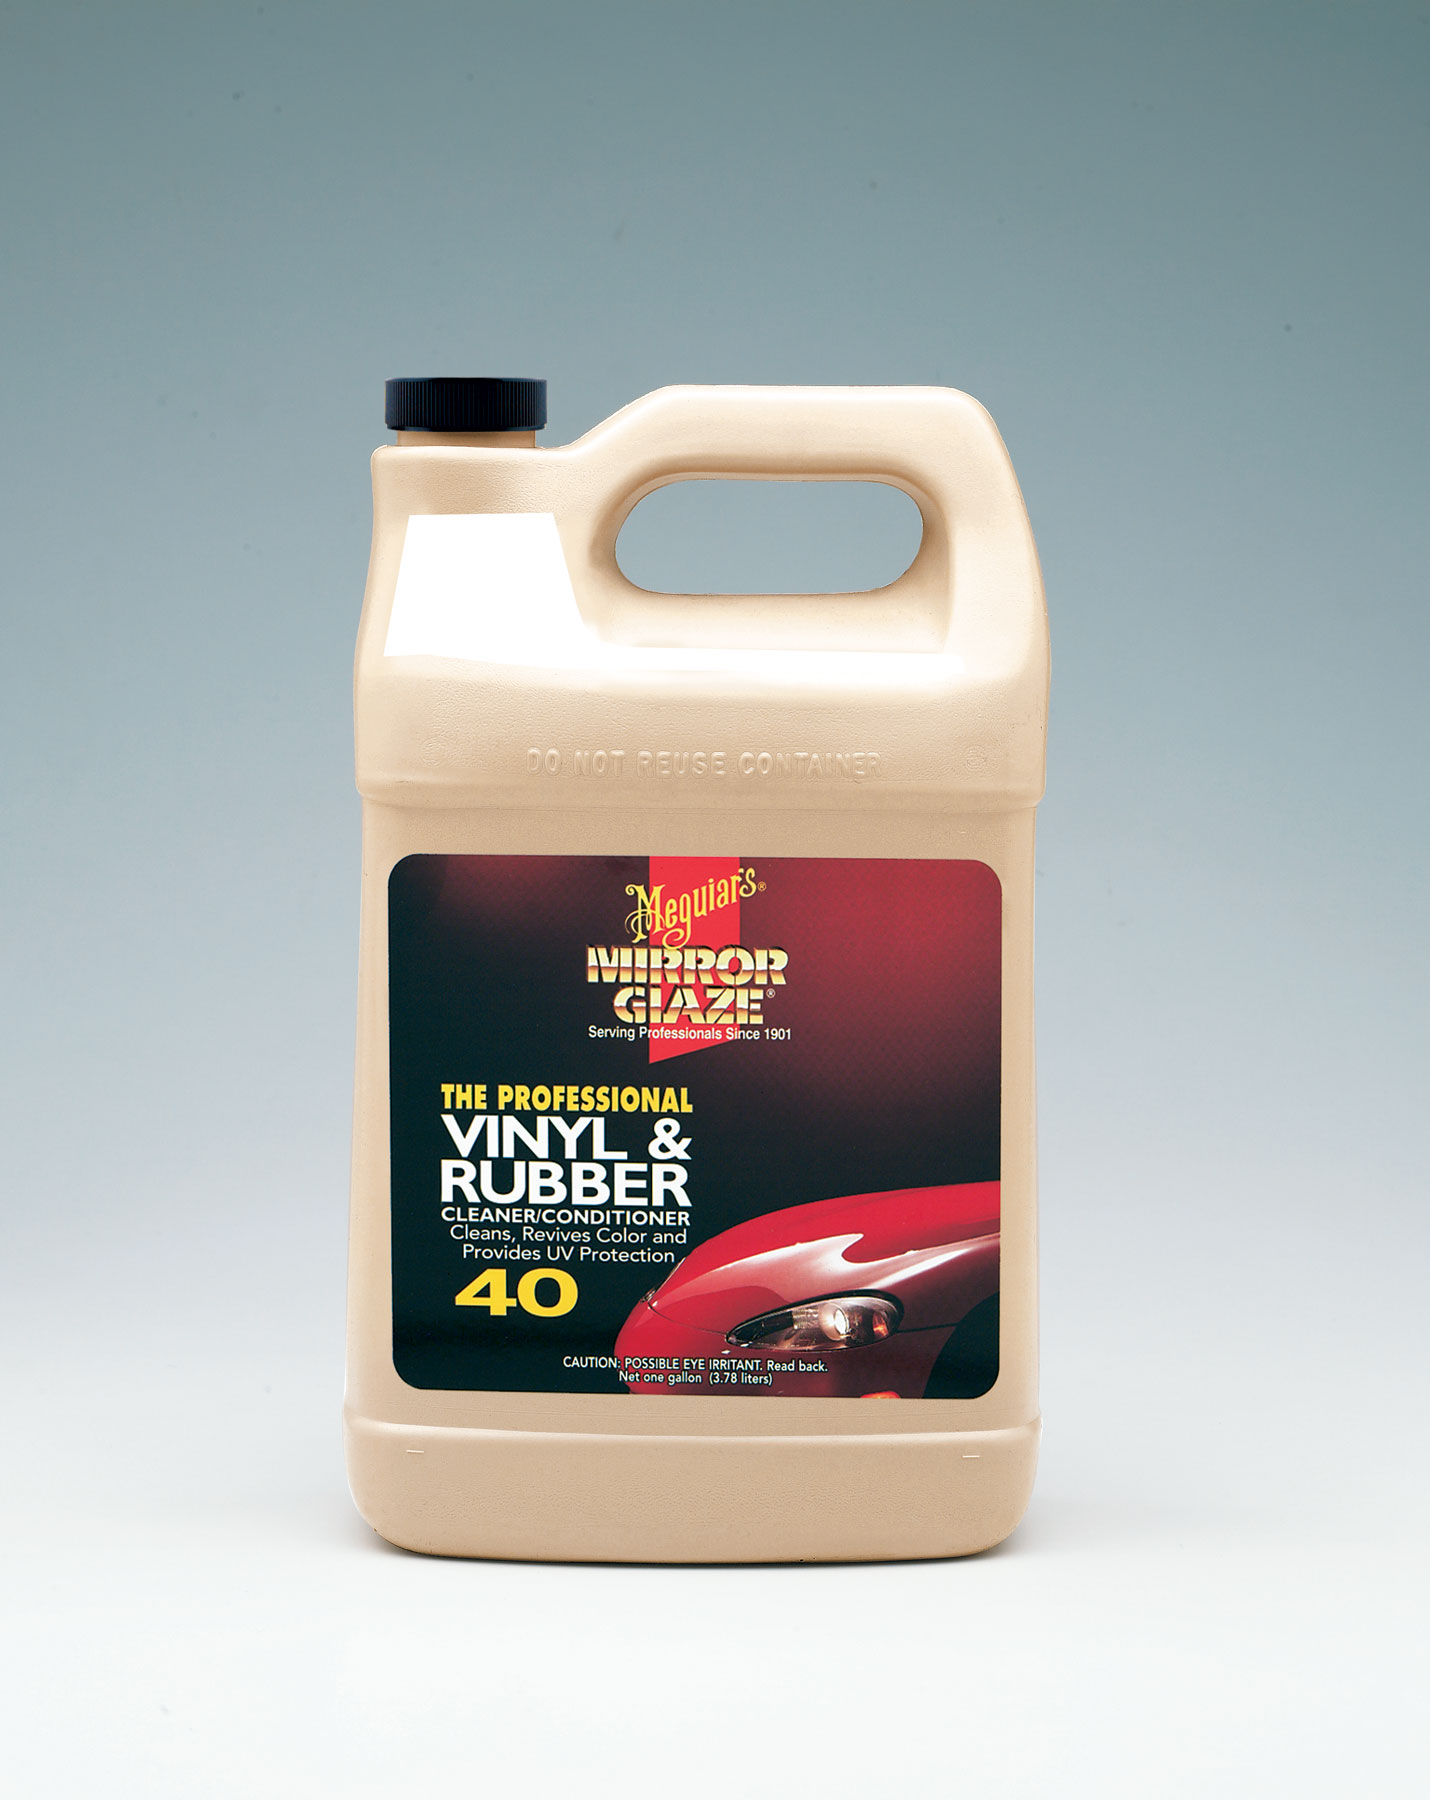 M-40 VINYL & RUBBER CLEANER/CONDITIONER